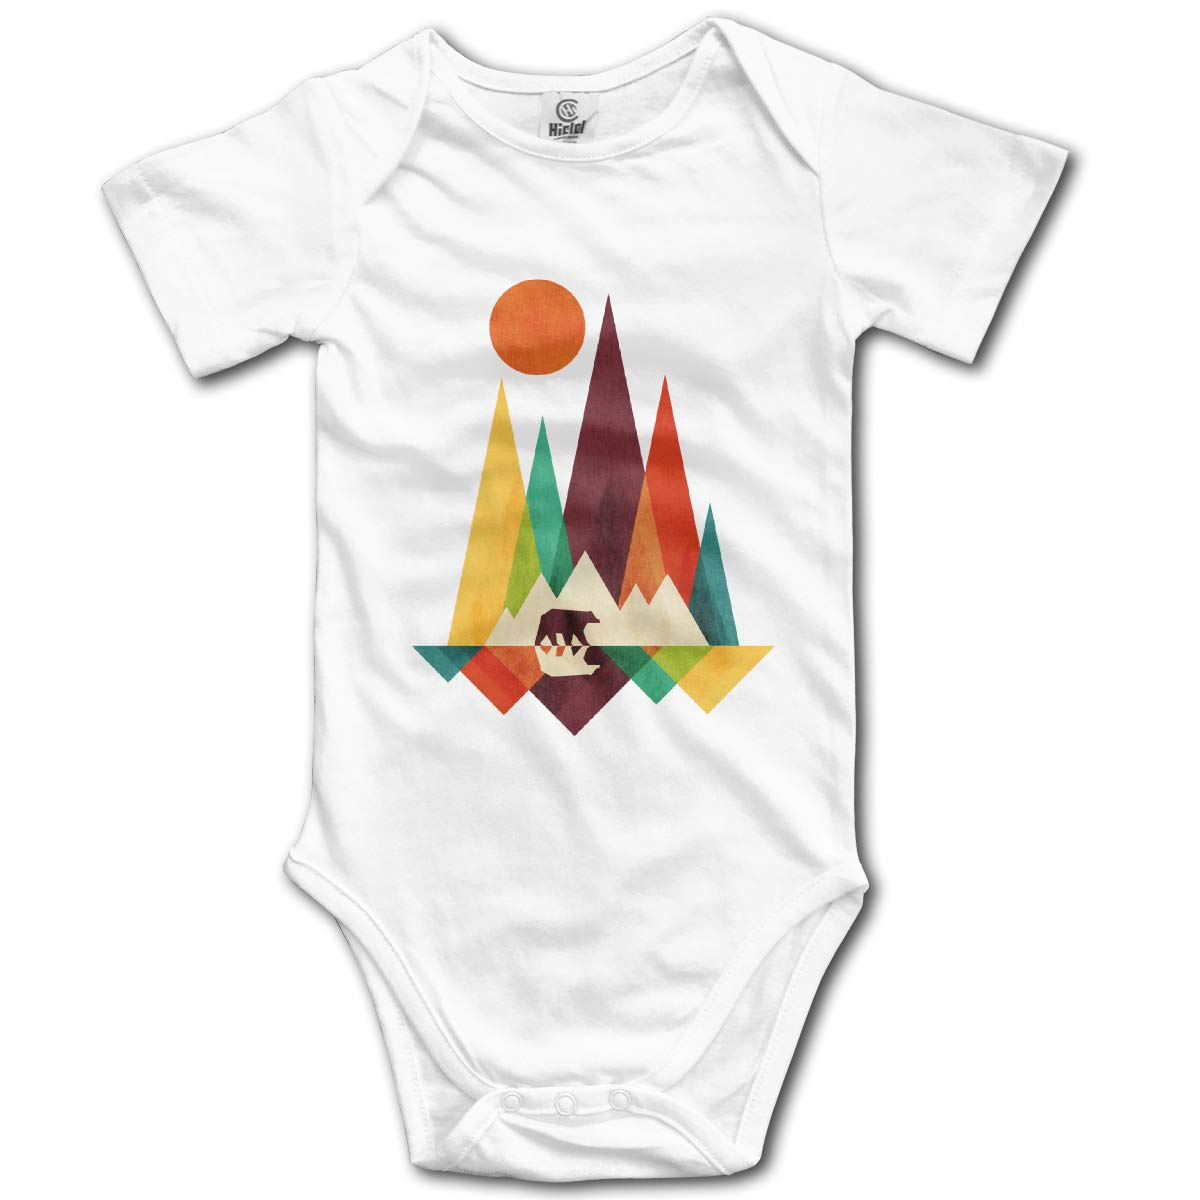 Volunteer Mountain Bear Colorful Boys /& Girls Black Short Sleeve Romper Bodysuit Outfits for 0-24 Months